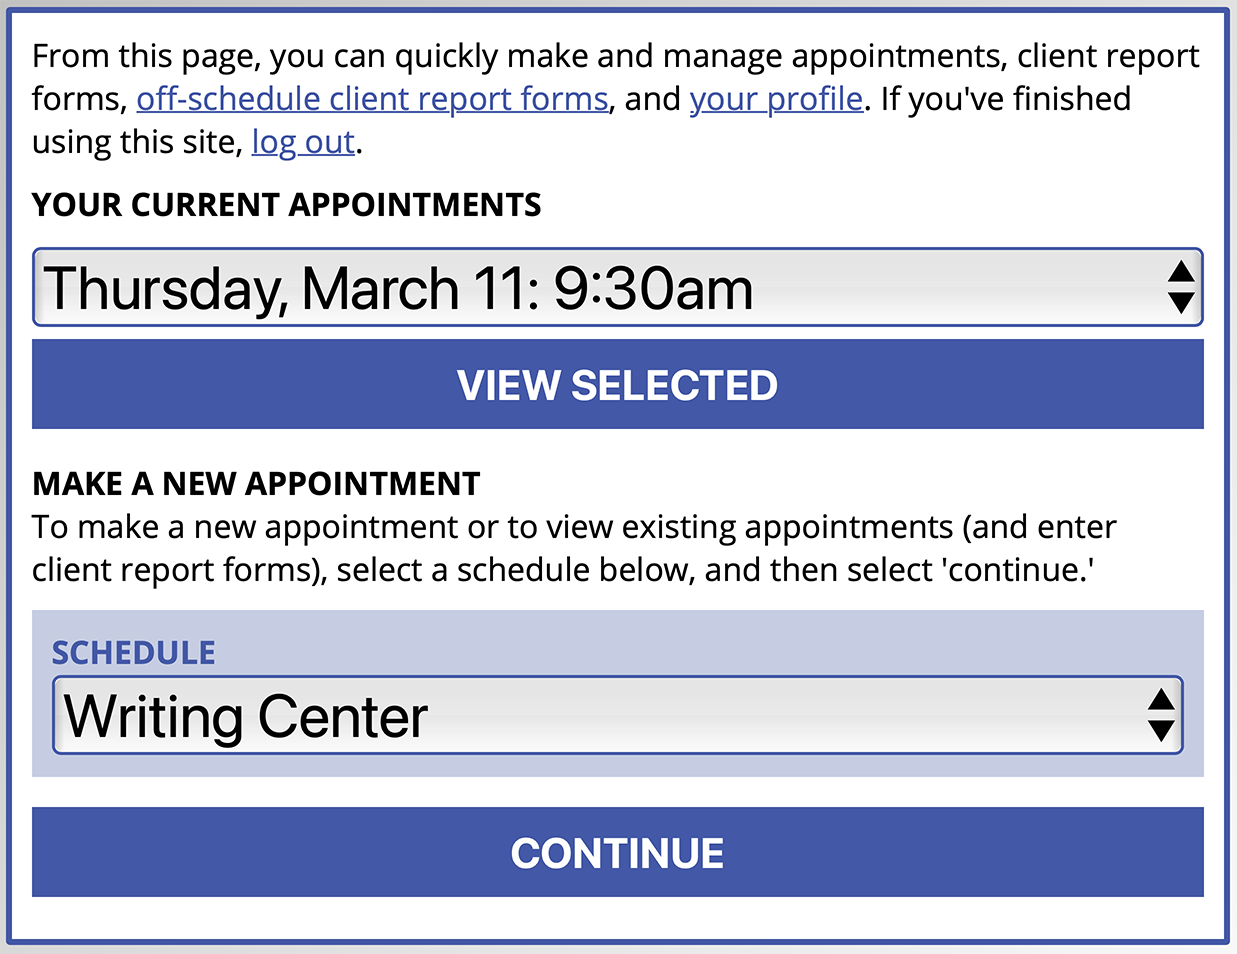 Text Interface for Making an Appointment